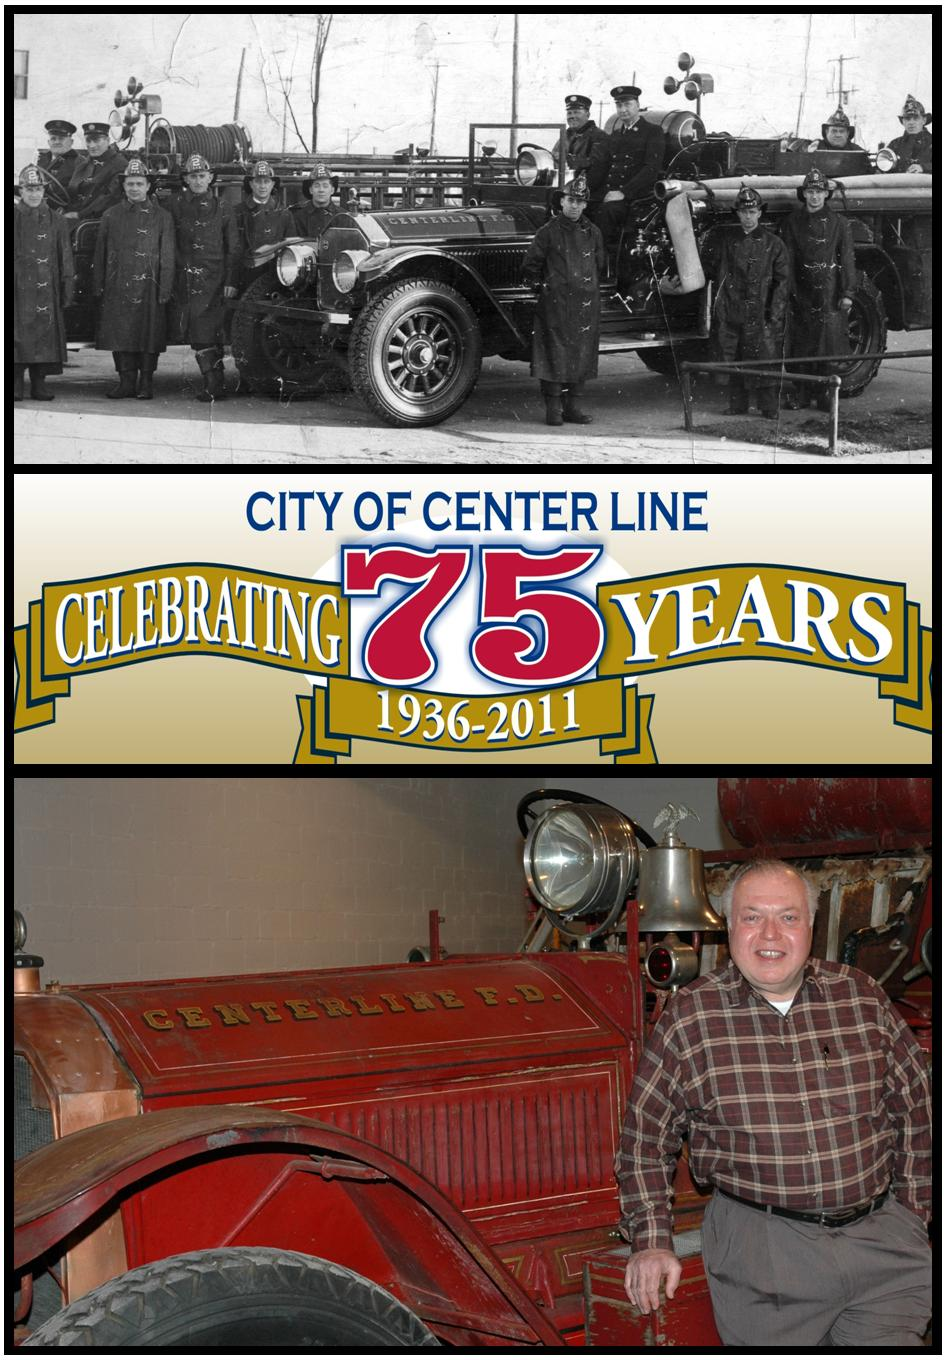 Comparative Photo of Center Line Fire Engine in the Past and Current